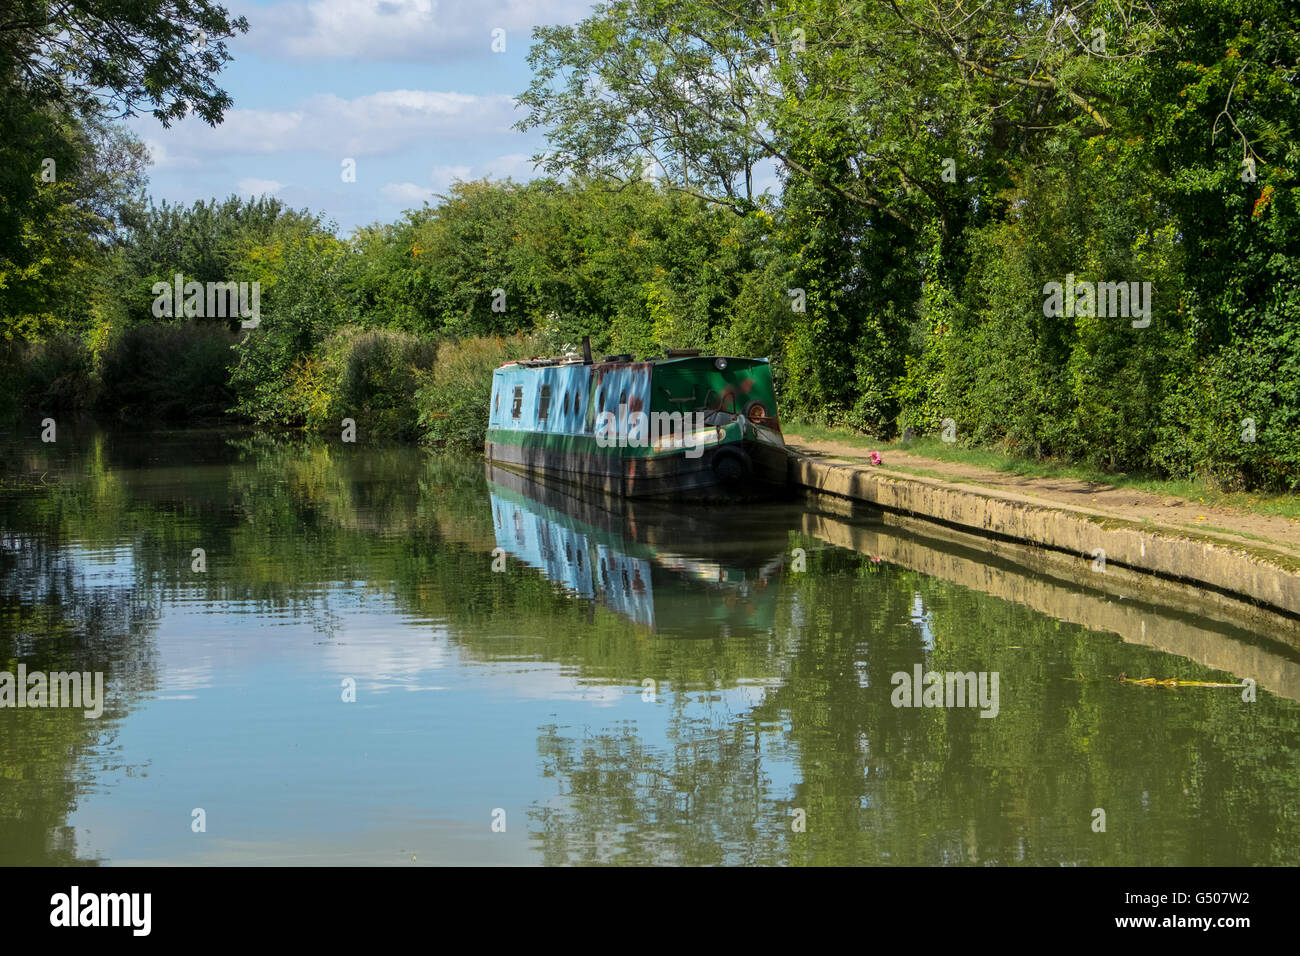 Canal boat on the Grand Union Canal in rural Leicestershire. - Stock Image